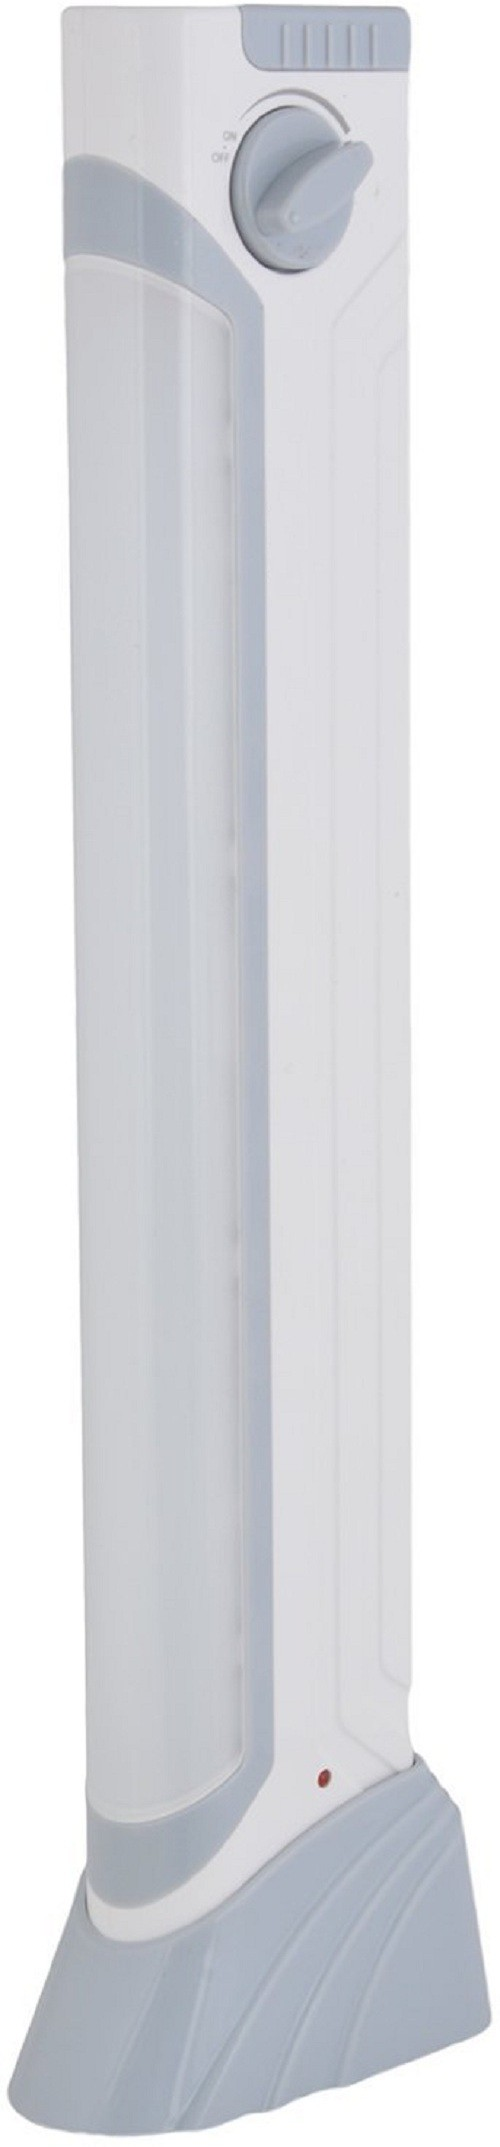 View eSnap DP 7103 Adjustable brightness Emergency Light Emergency Lights(White) Home Appliances Price Online(eSnap)